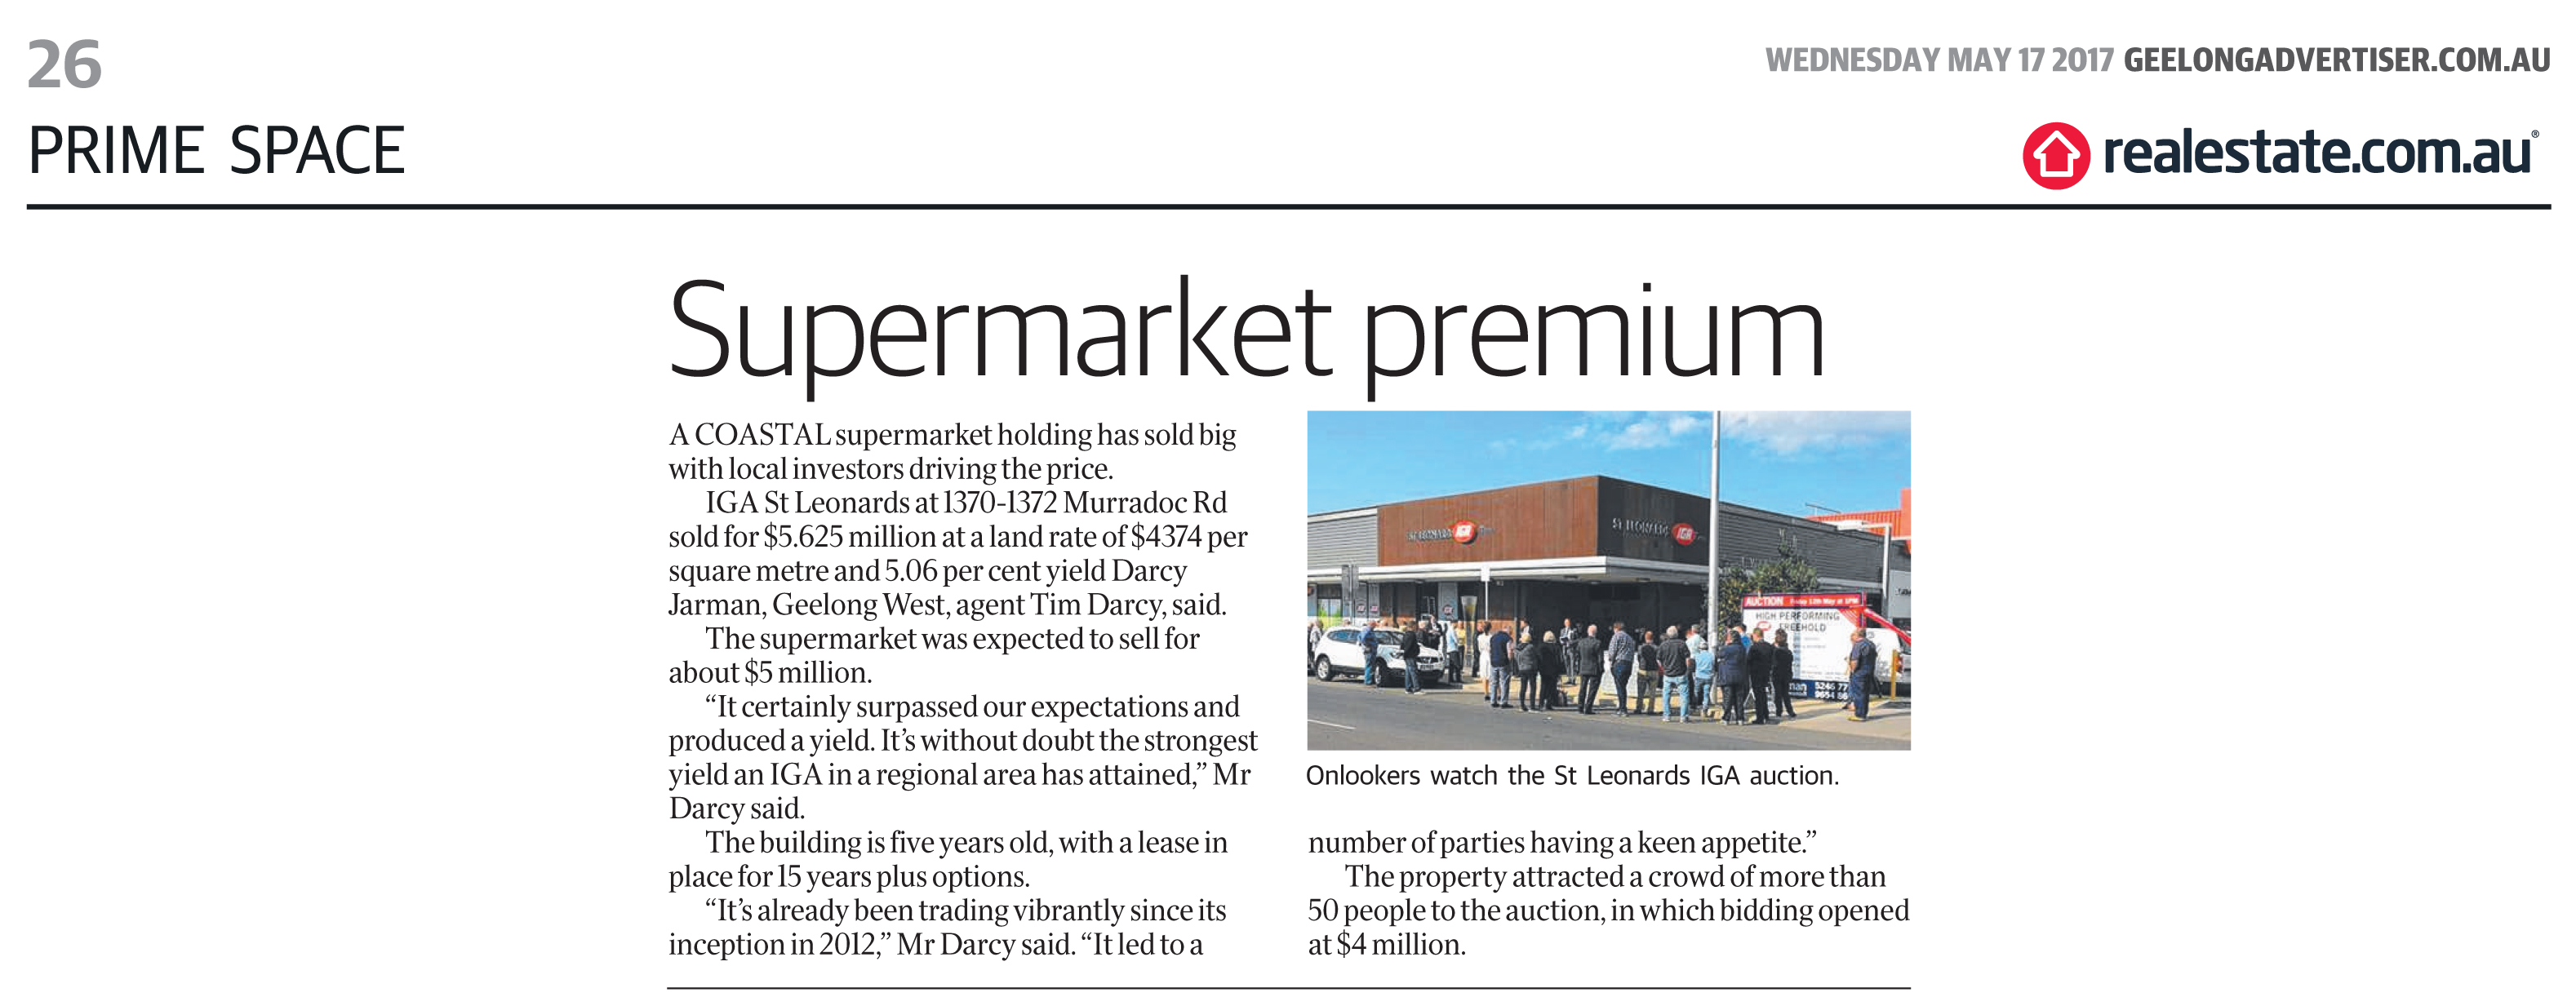 editedIGA-Supermarket-St-LeonardsGeelong-Advertiser_17-05-2017_Main_Geelong_p26